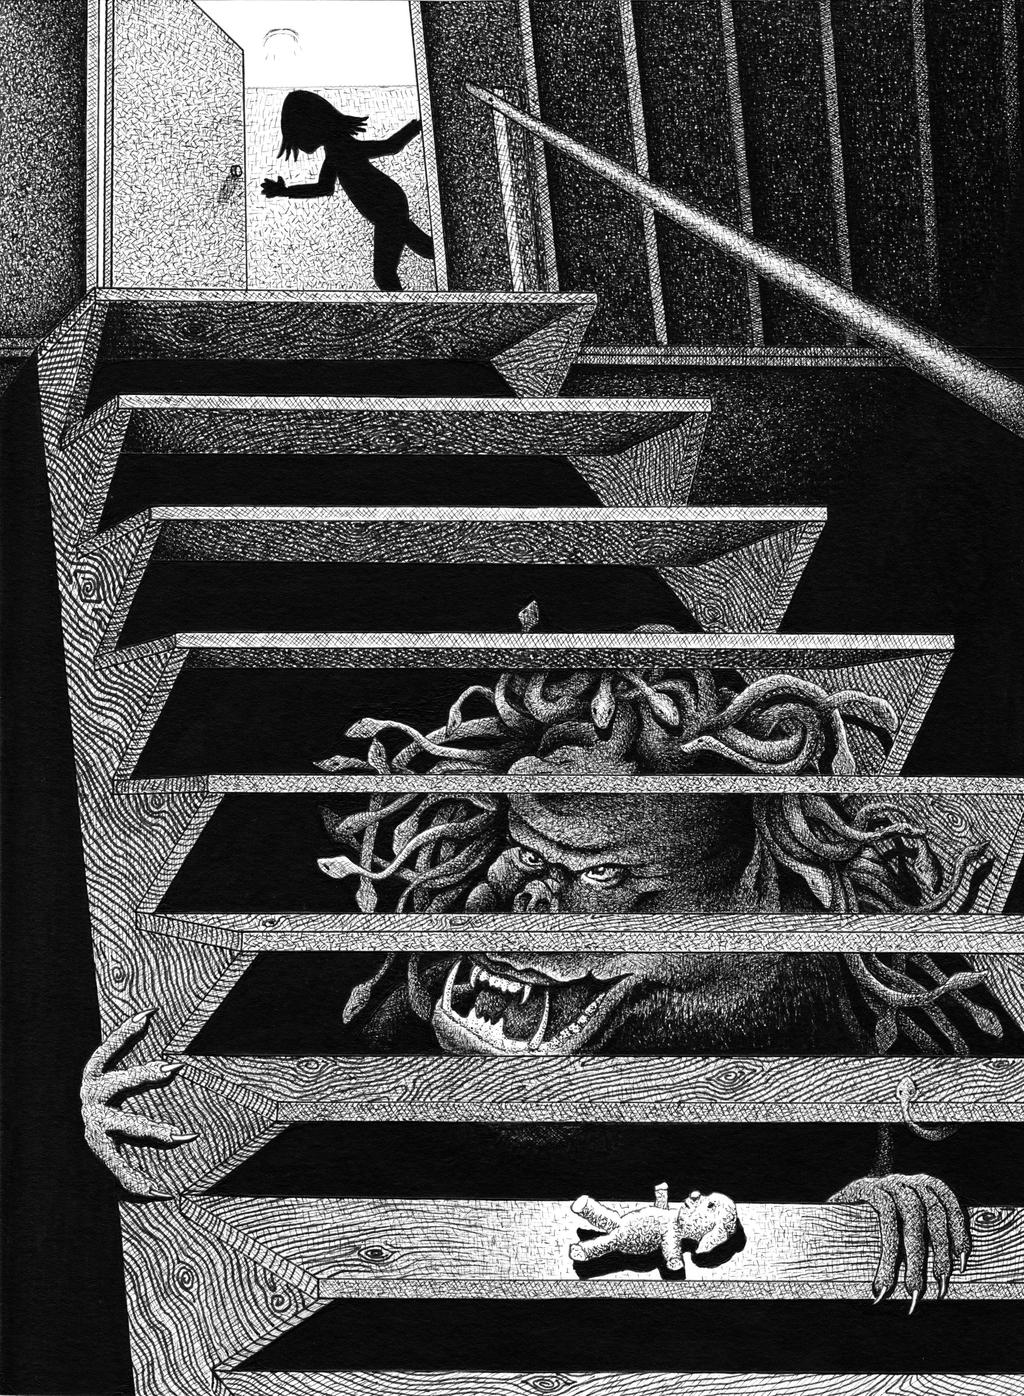 The Basement Stairs By Ronmonroe On DeviantArt